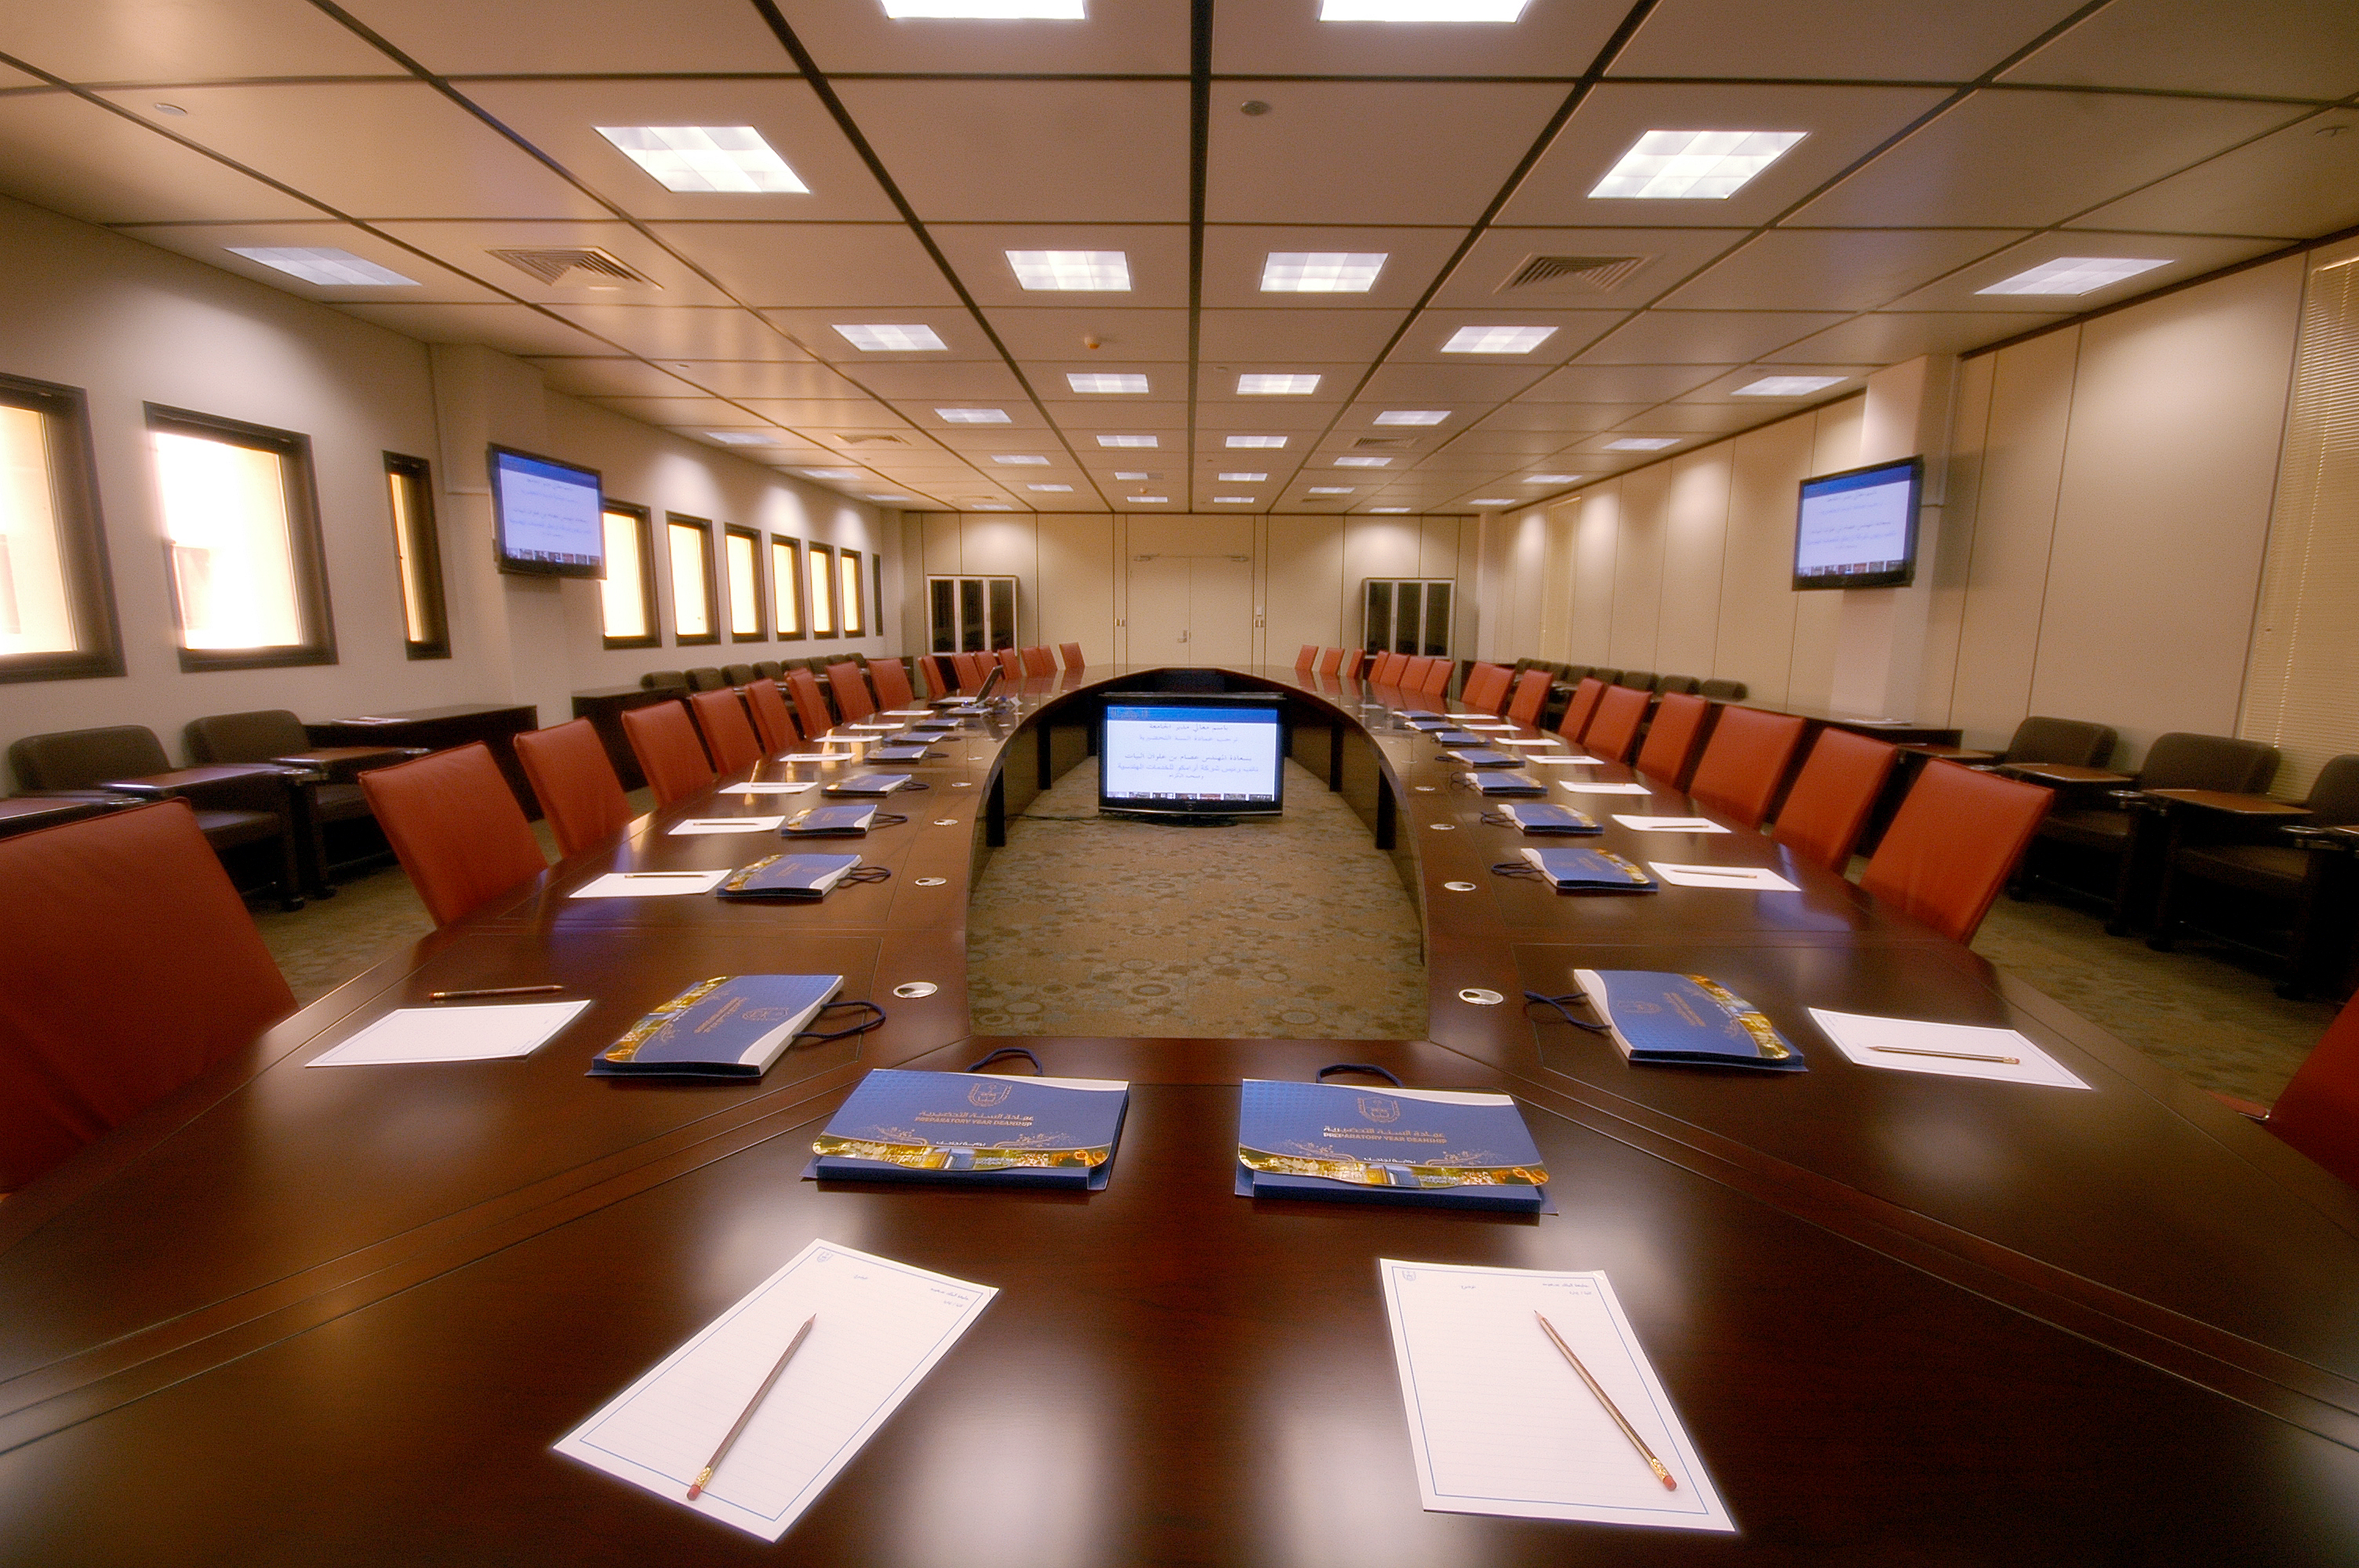 Large empty conference room with center computer, paper and pad at each seat